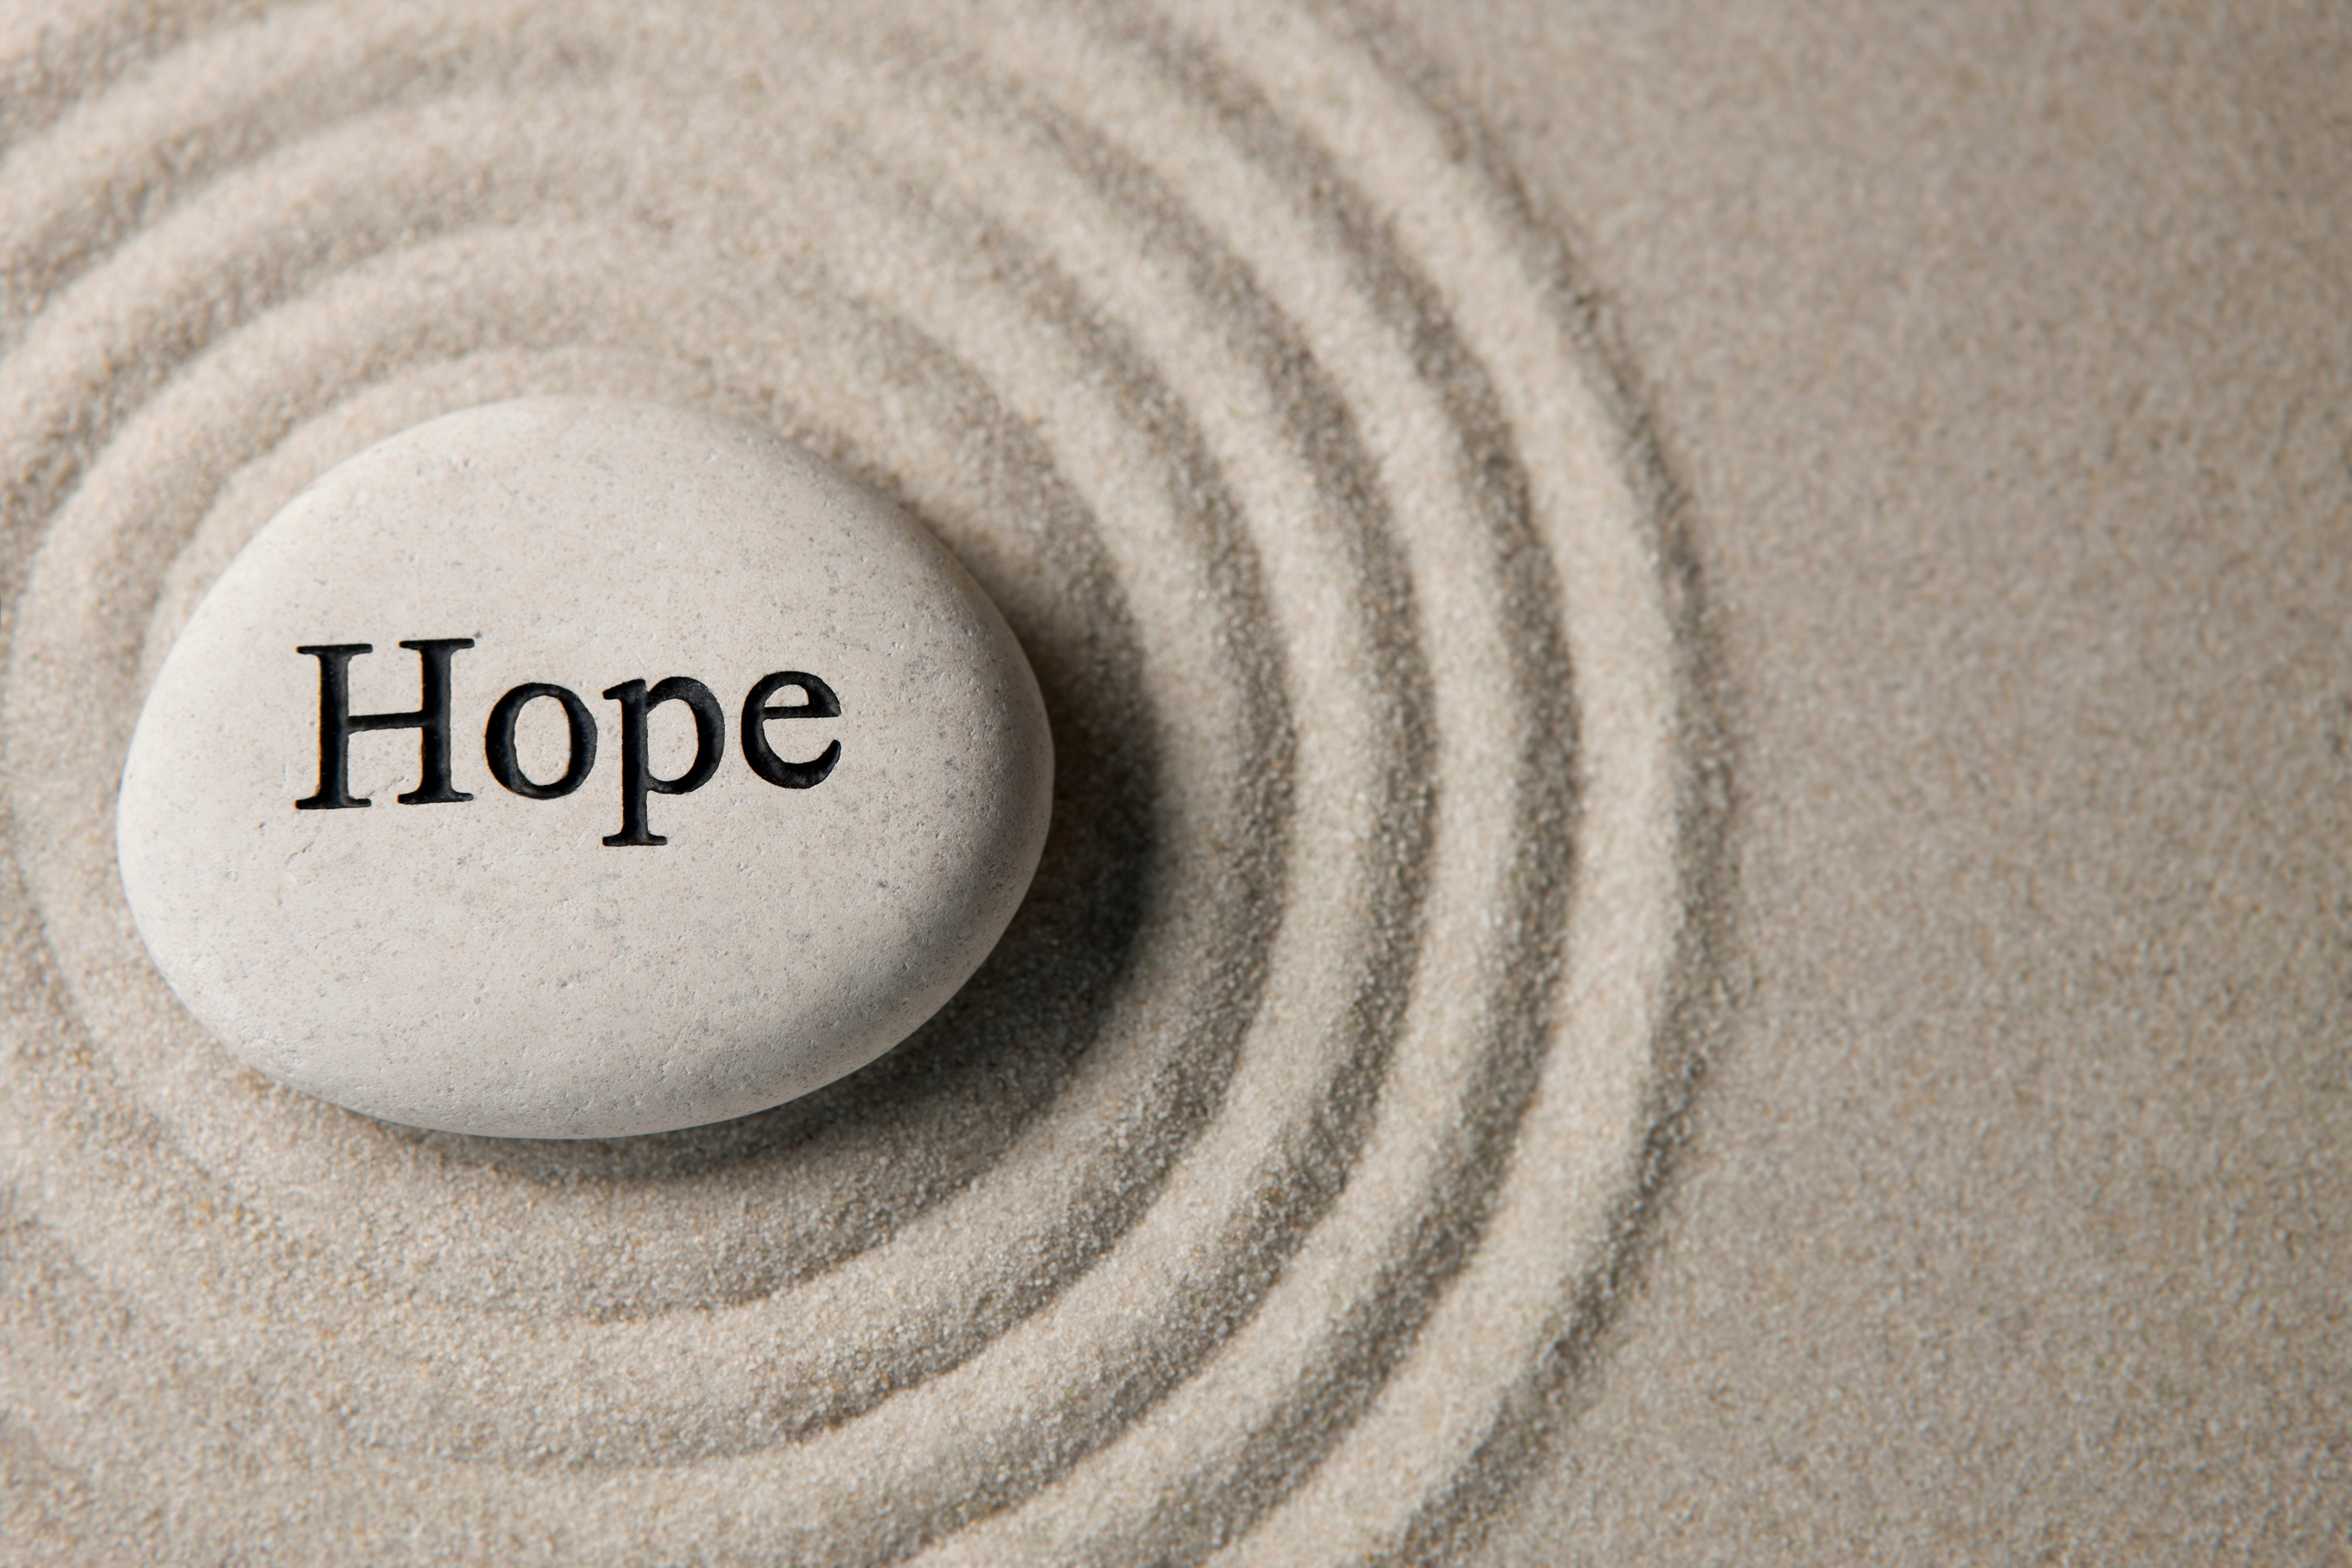 Hope for a nation